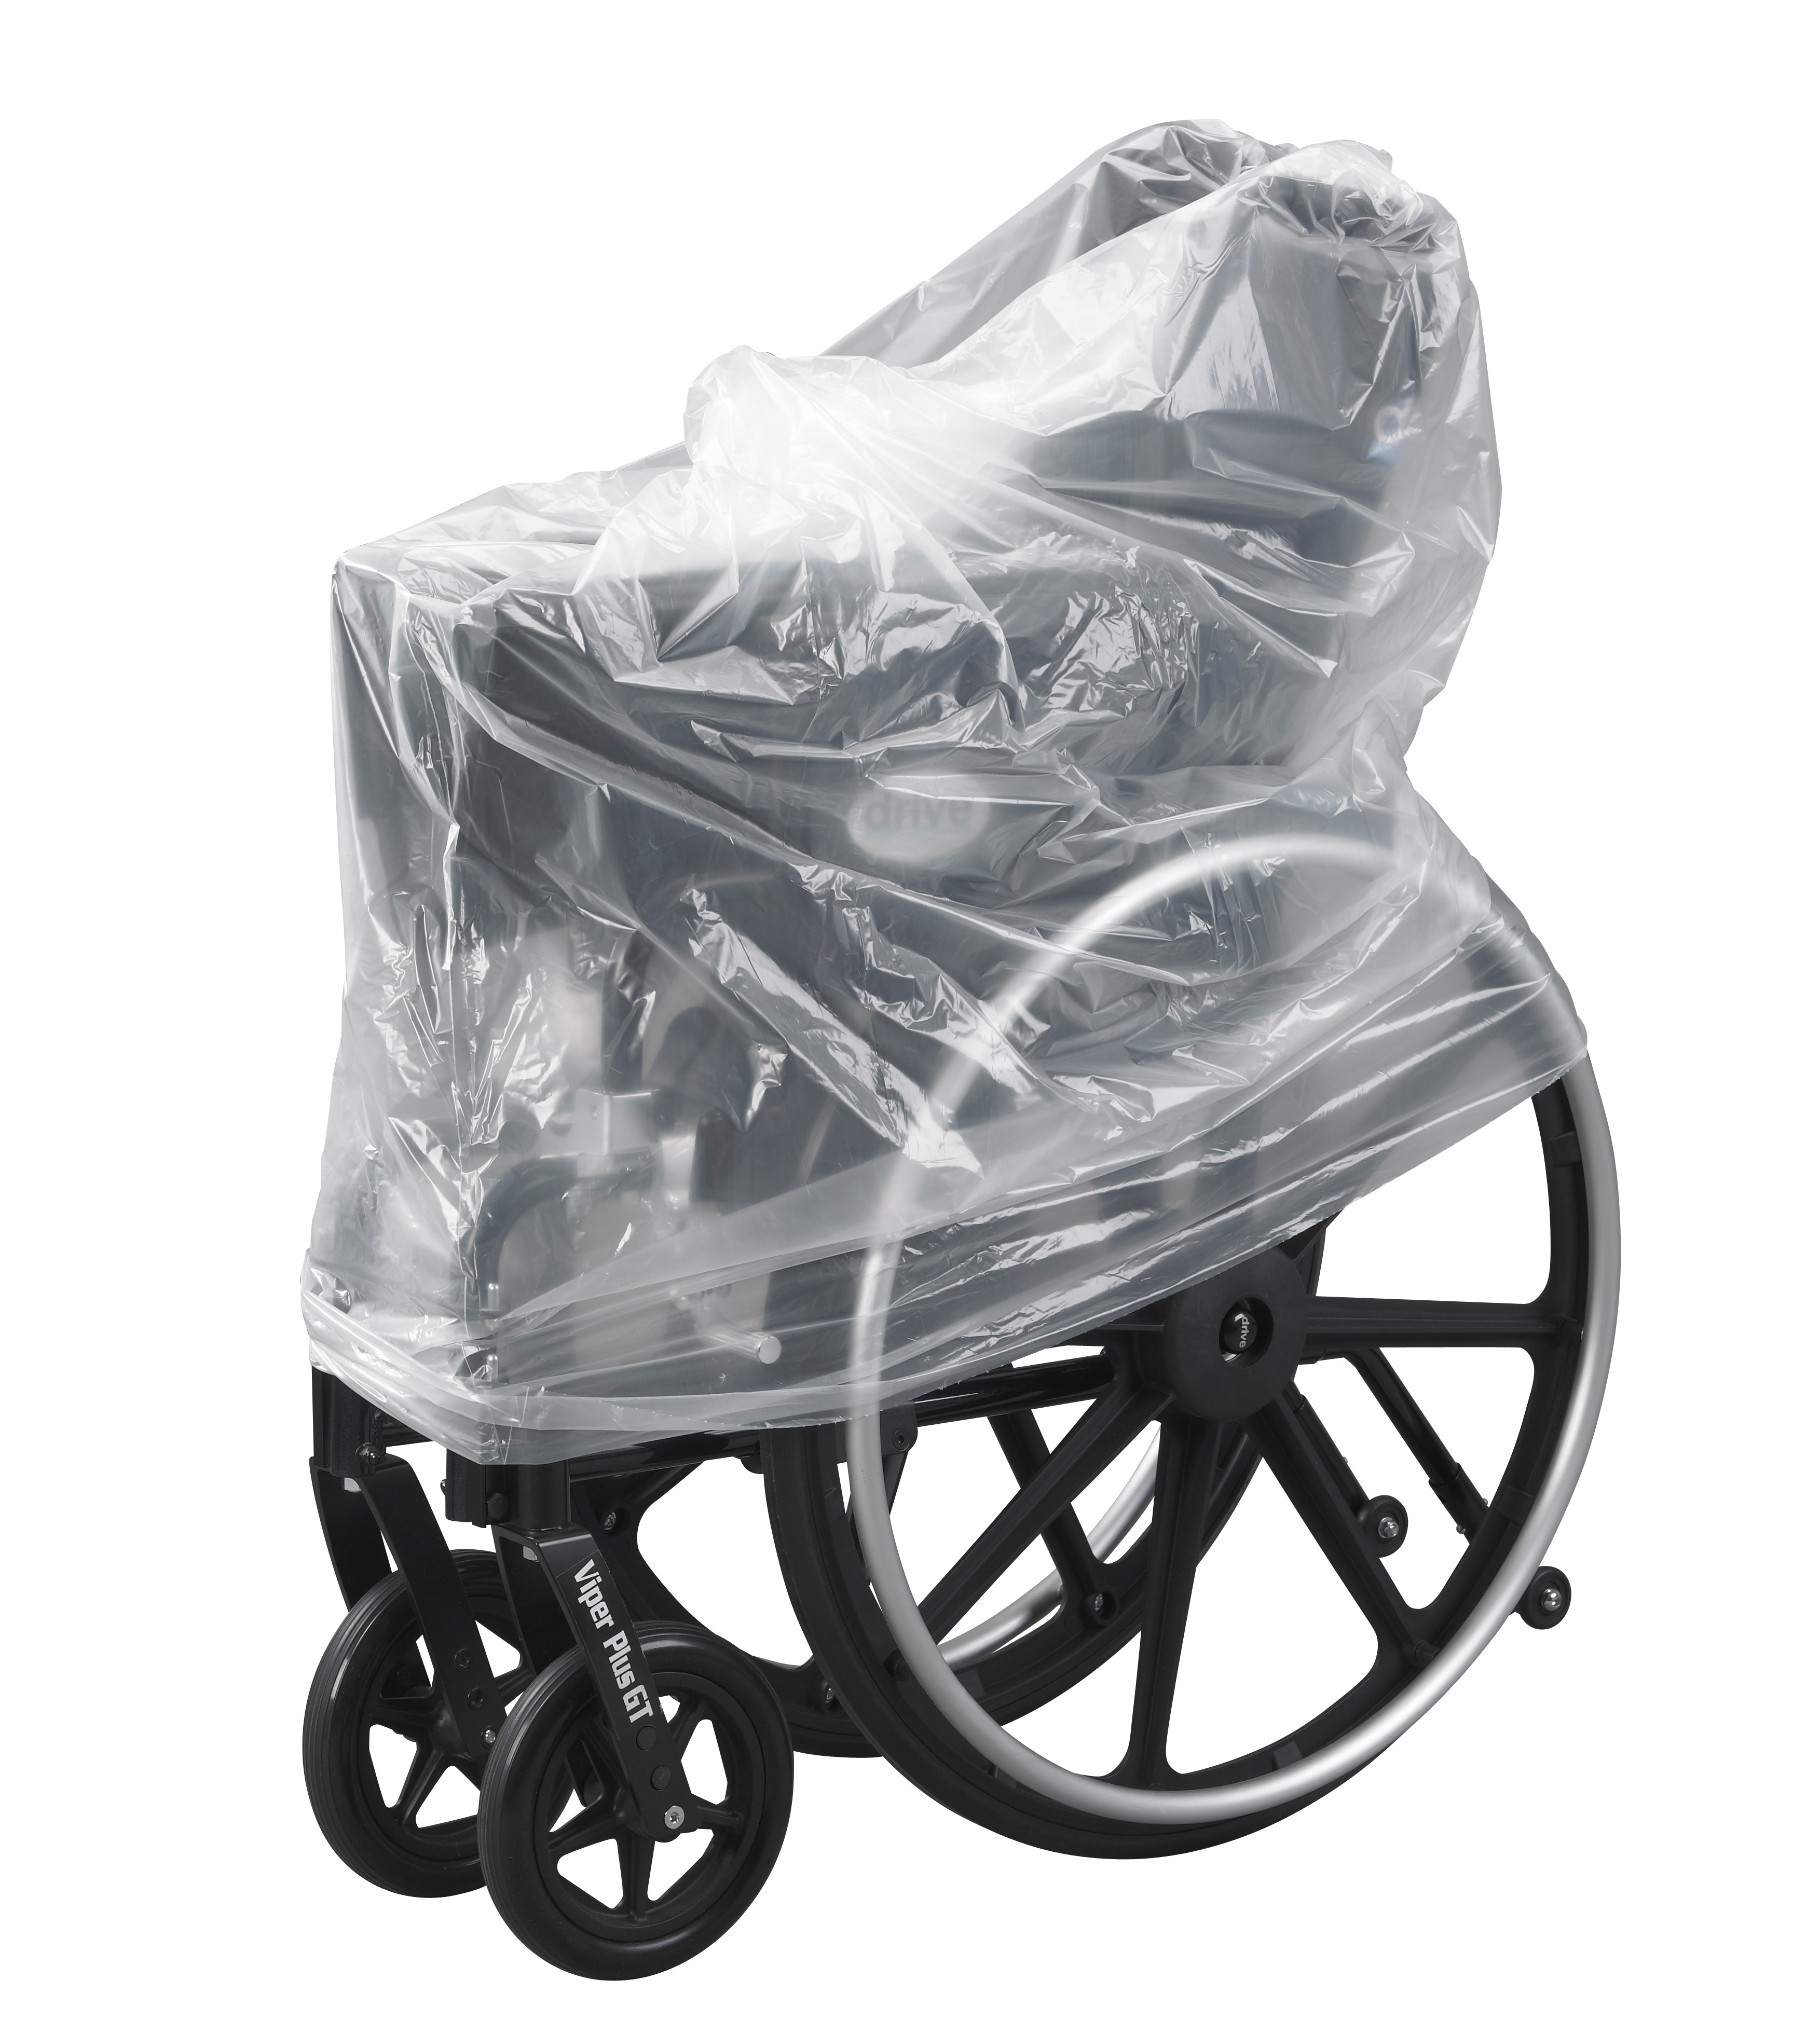 fishing chair hand wheel how much to reupholster a dining room clear plastic wheelchair storage transport cover bag